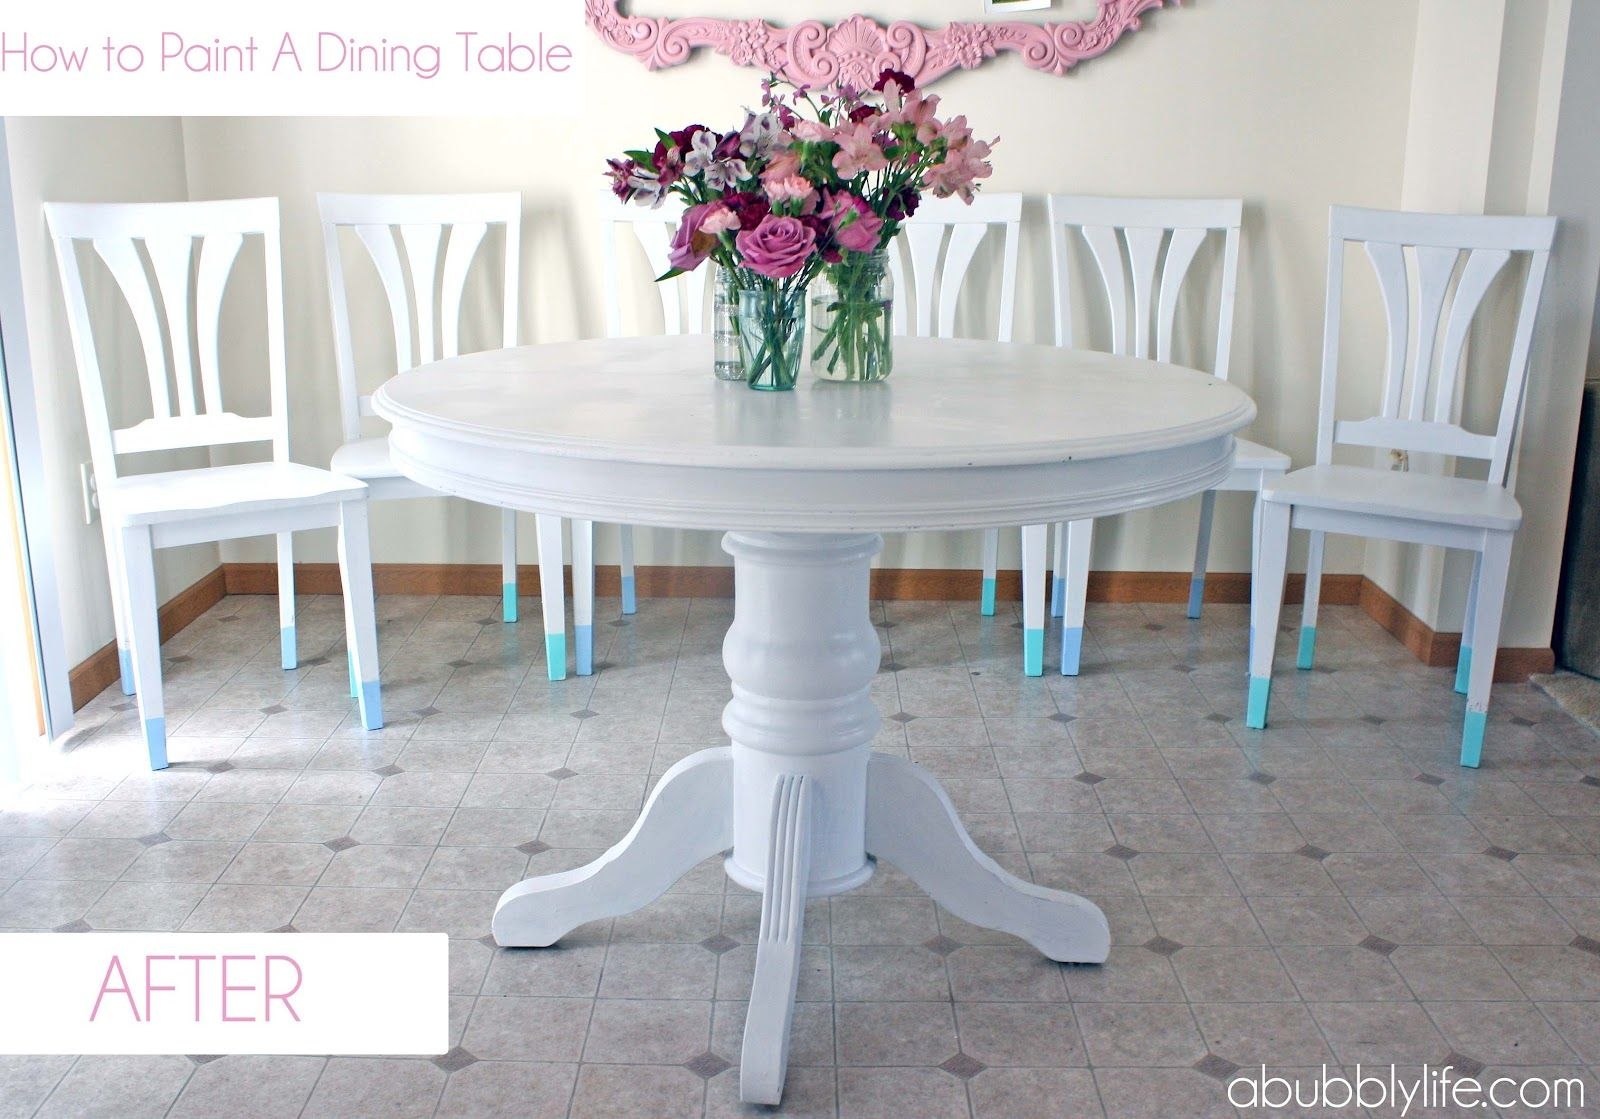 How To Paint A Dining Room Table Chairs Makeover Reveal A Bubbly Life Painted Dining Table Dining Table Chairs Dining Table Makeover